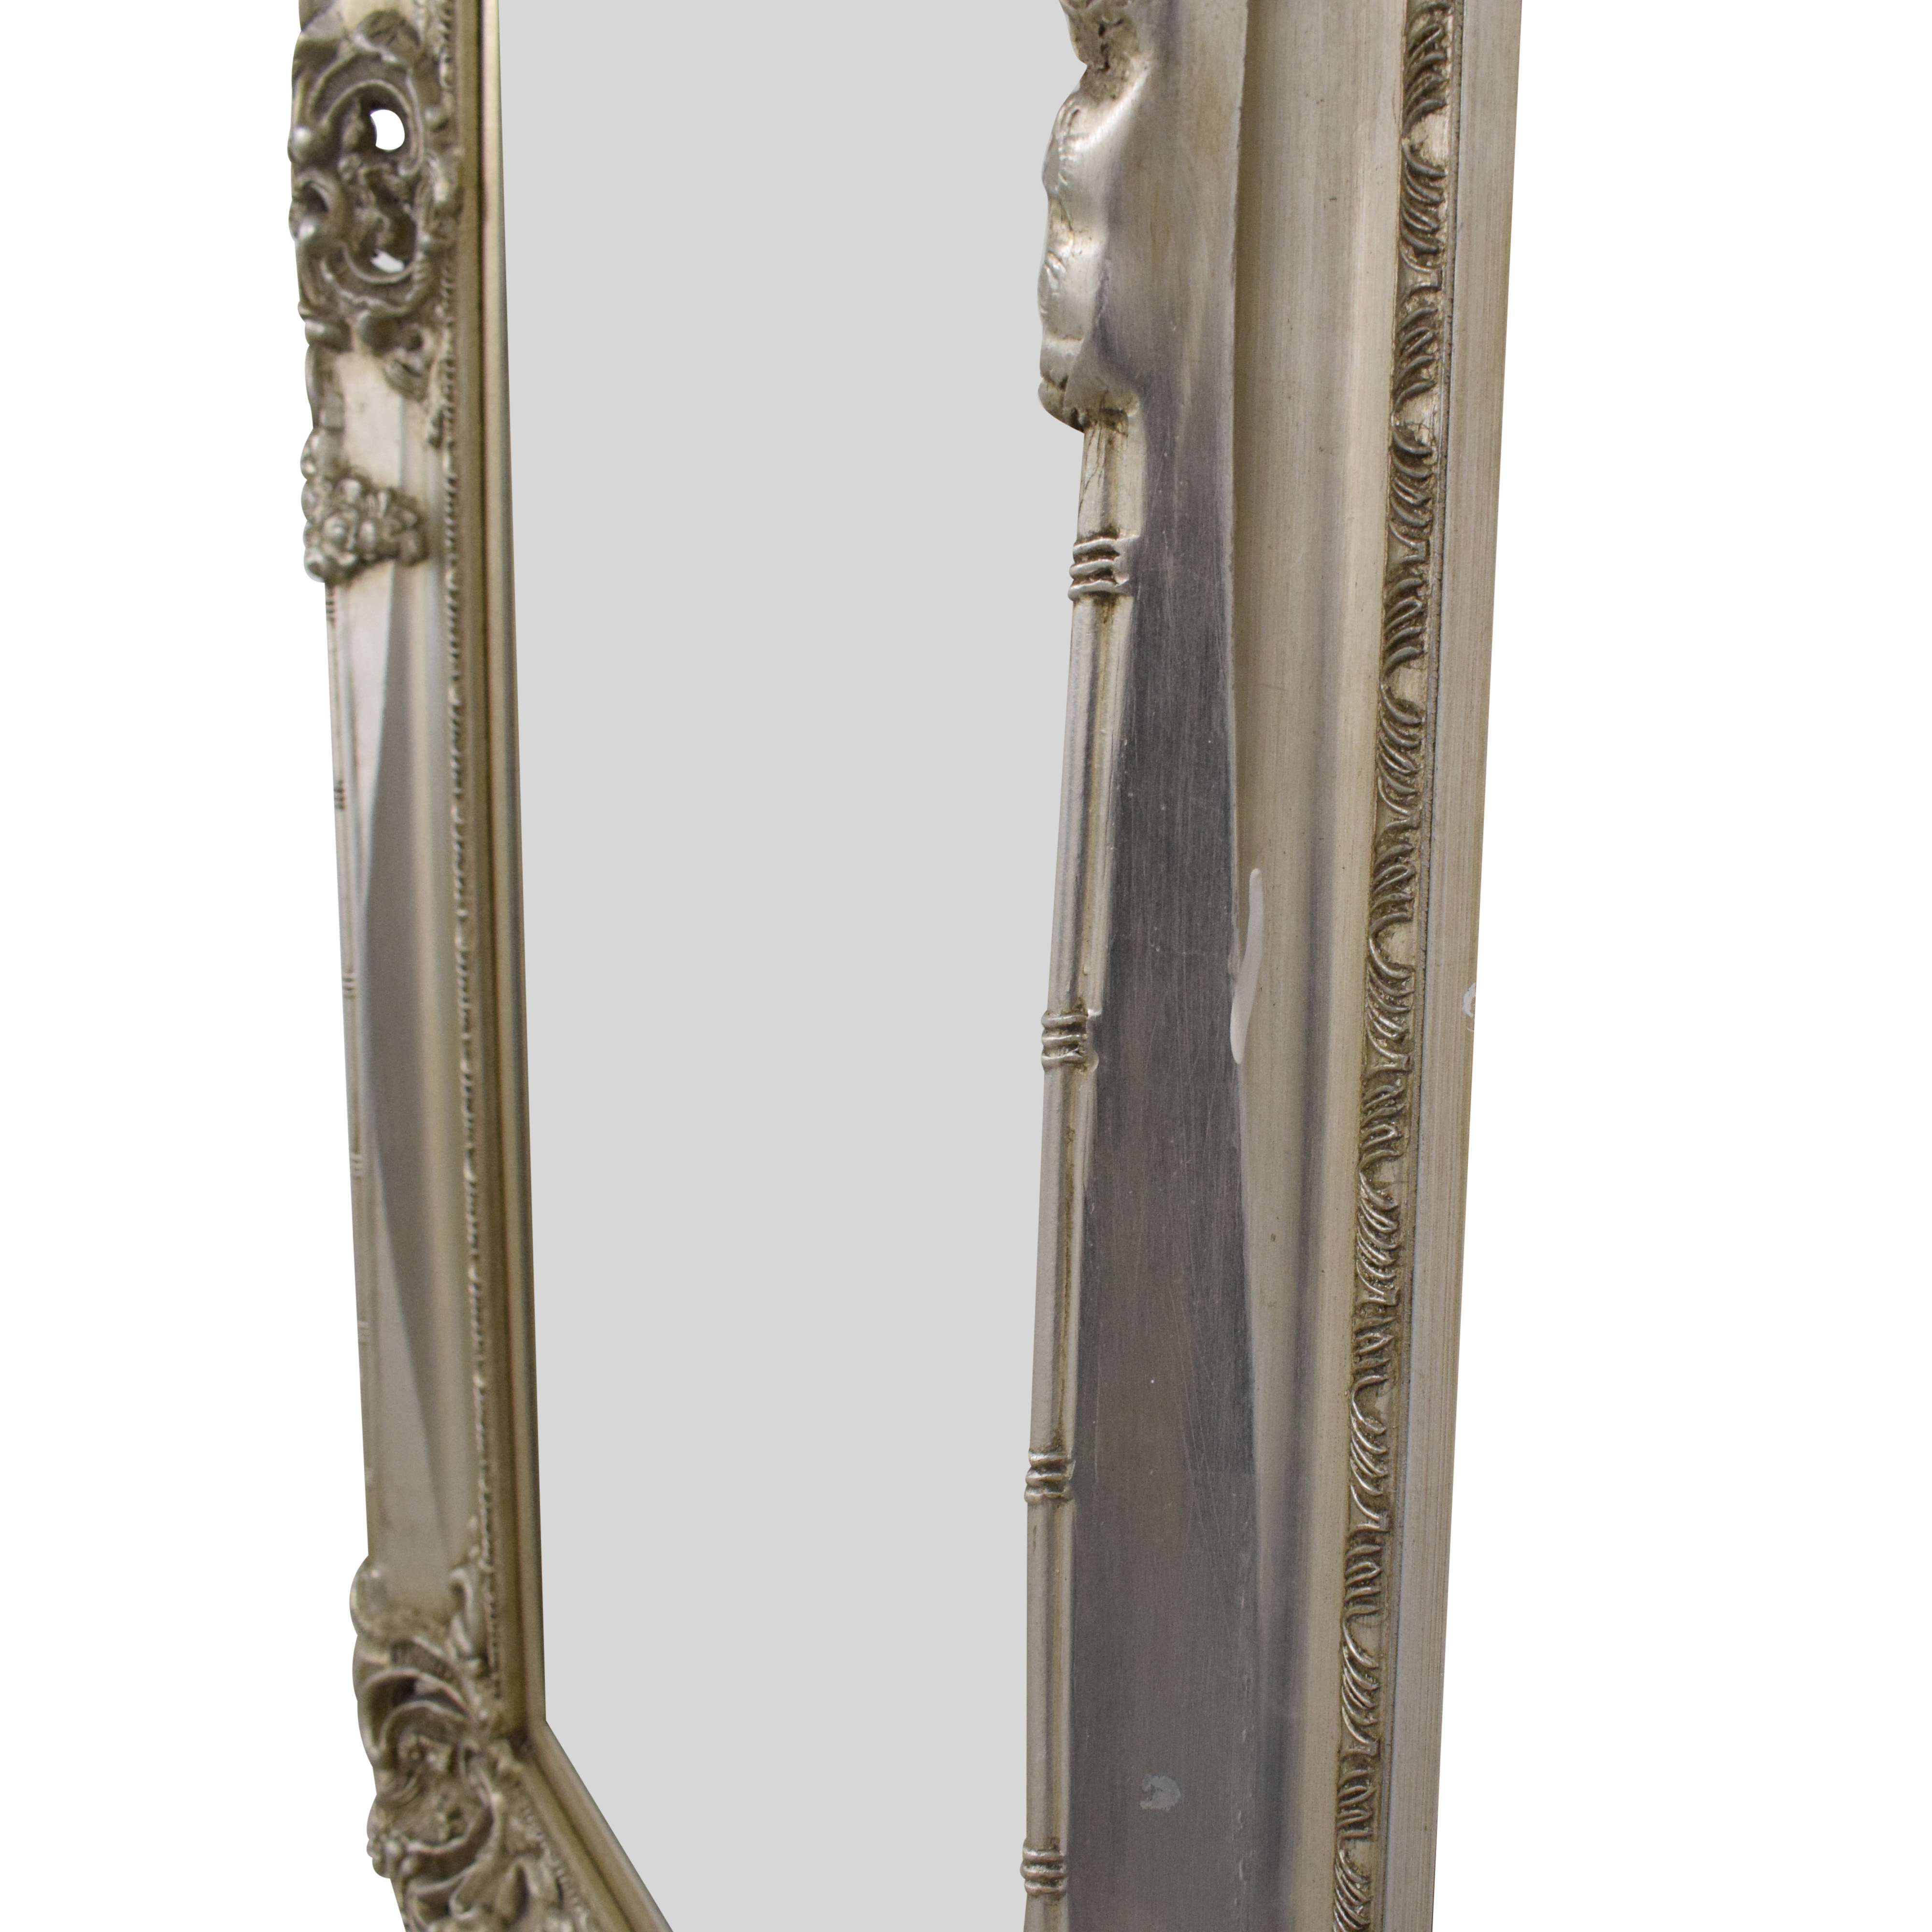 Hookes Antique Style Floor Mirror ma